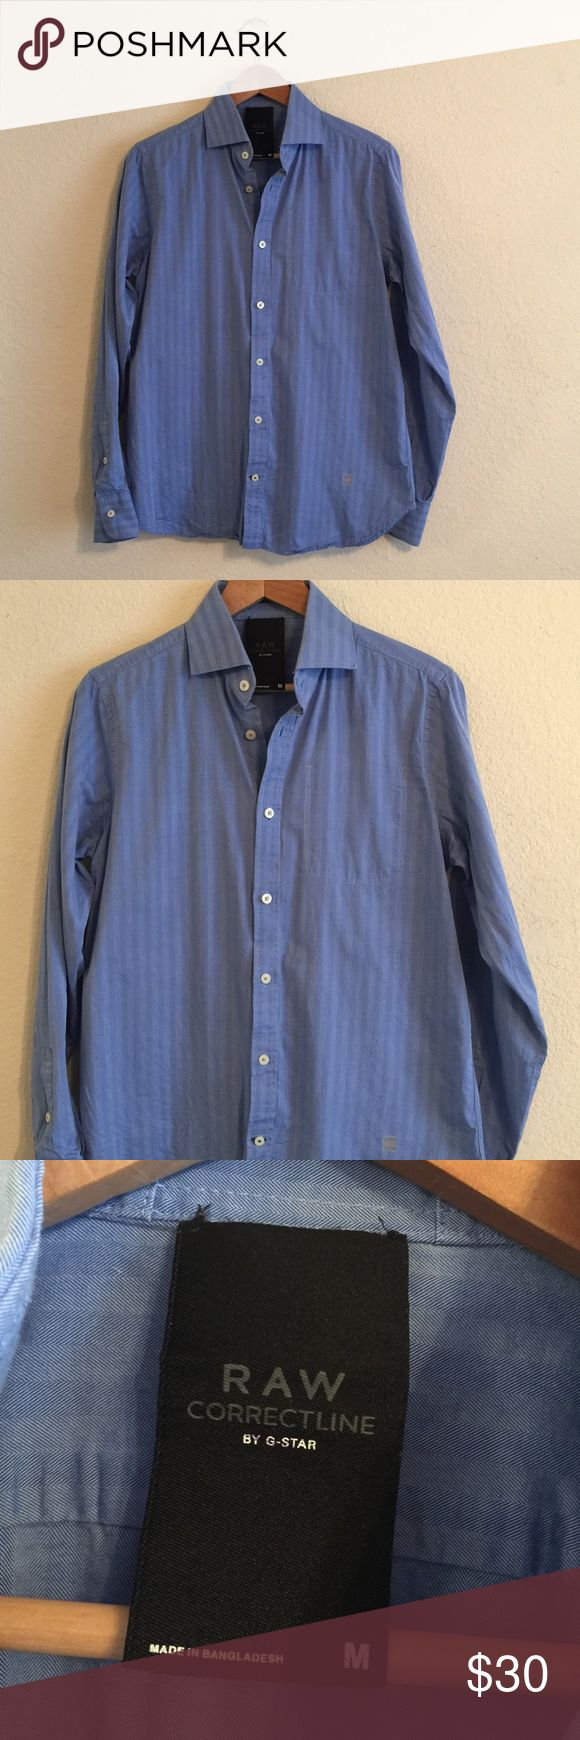 G STAR RAW men's CorrectLine Dress shirt M G Star Raw men's CorrectLine Button up shirt .  Size: Medium.  In Great condition! If you have any questions feel free to ask! G-Star Shirts Dress Shirts